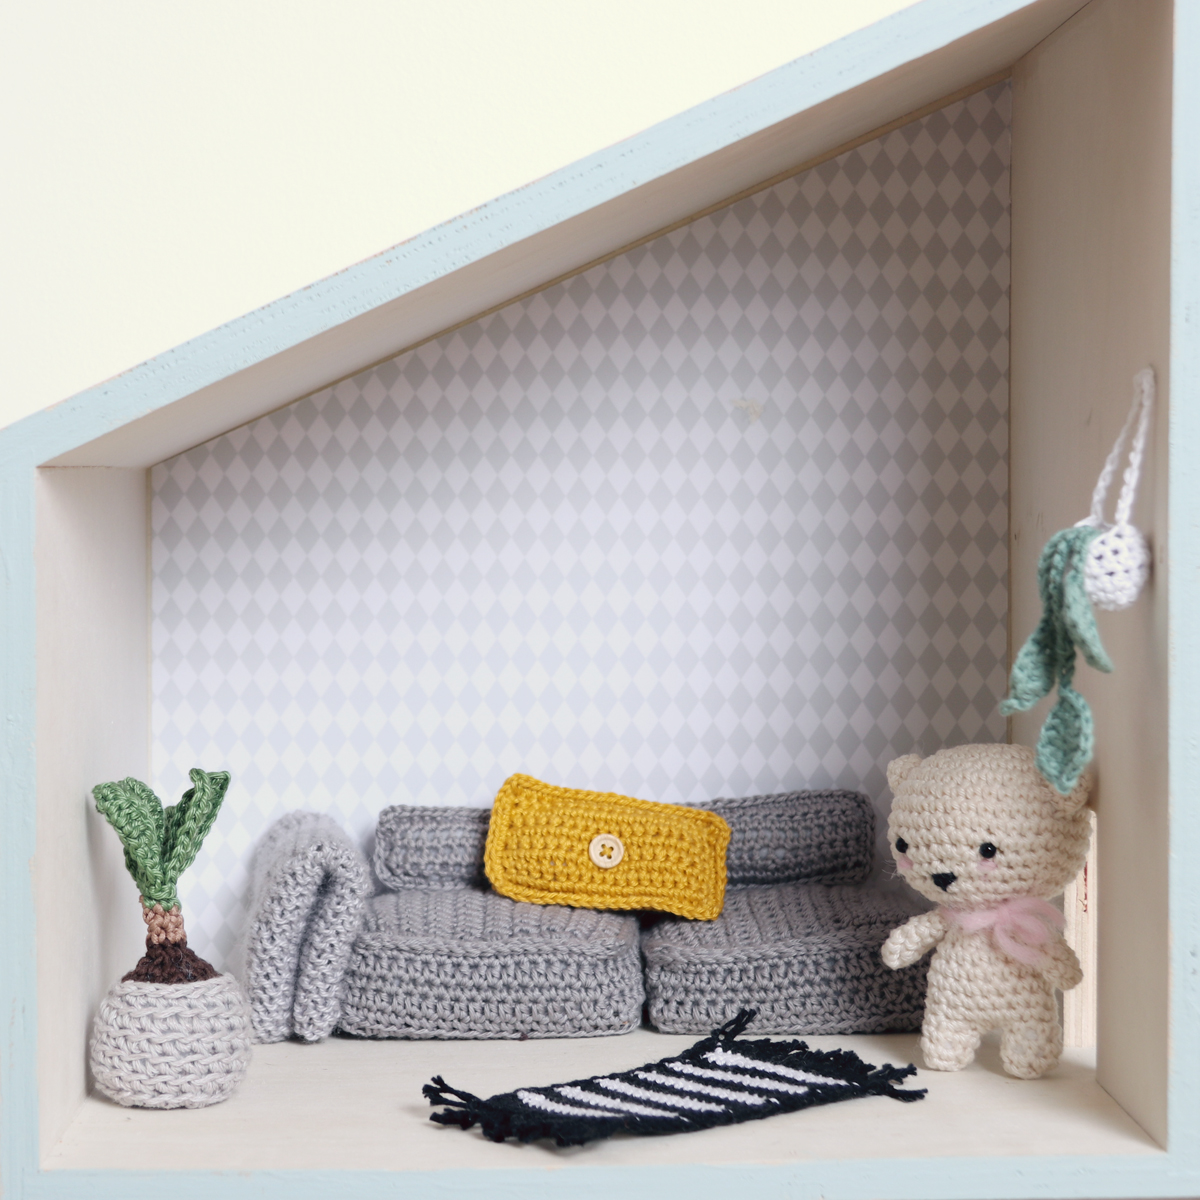 Doll House Advent Calendar 2017 by Ina Rho (crochet hanging plant)